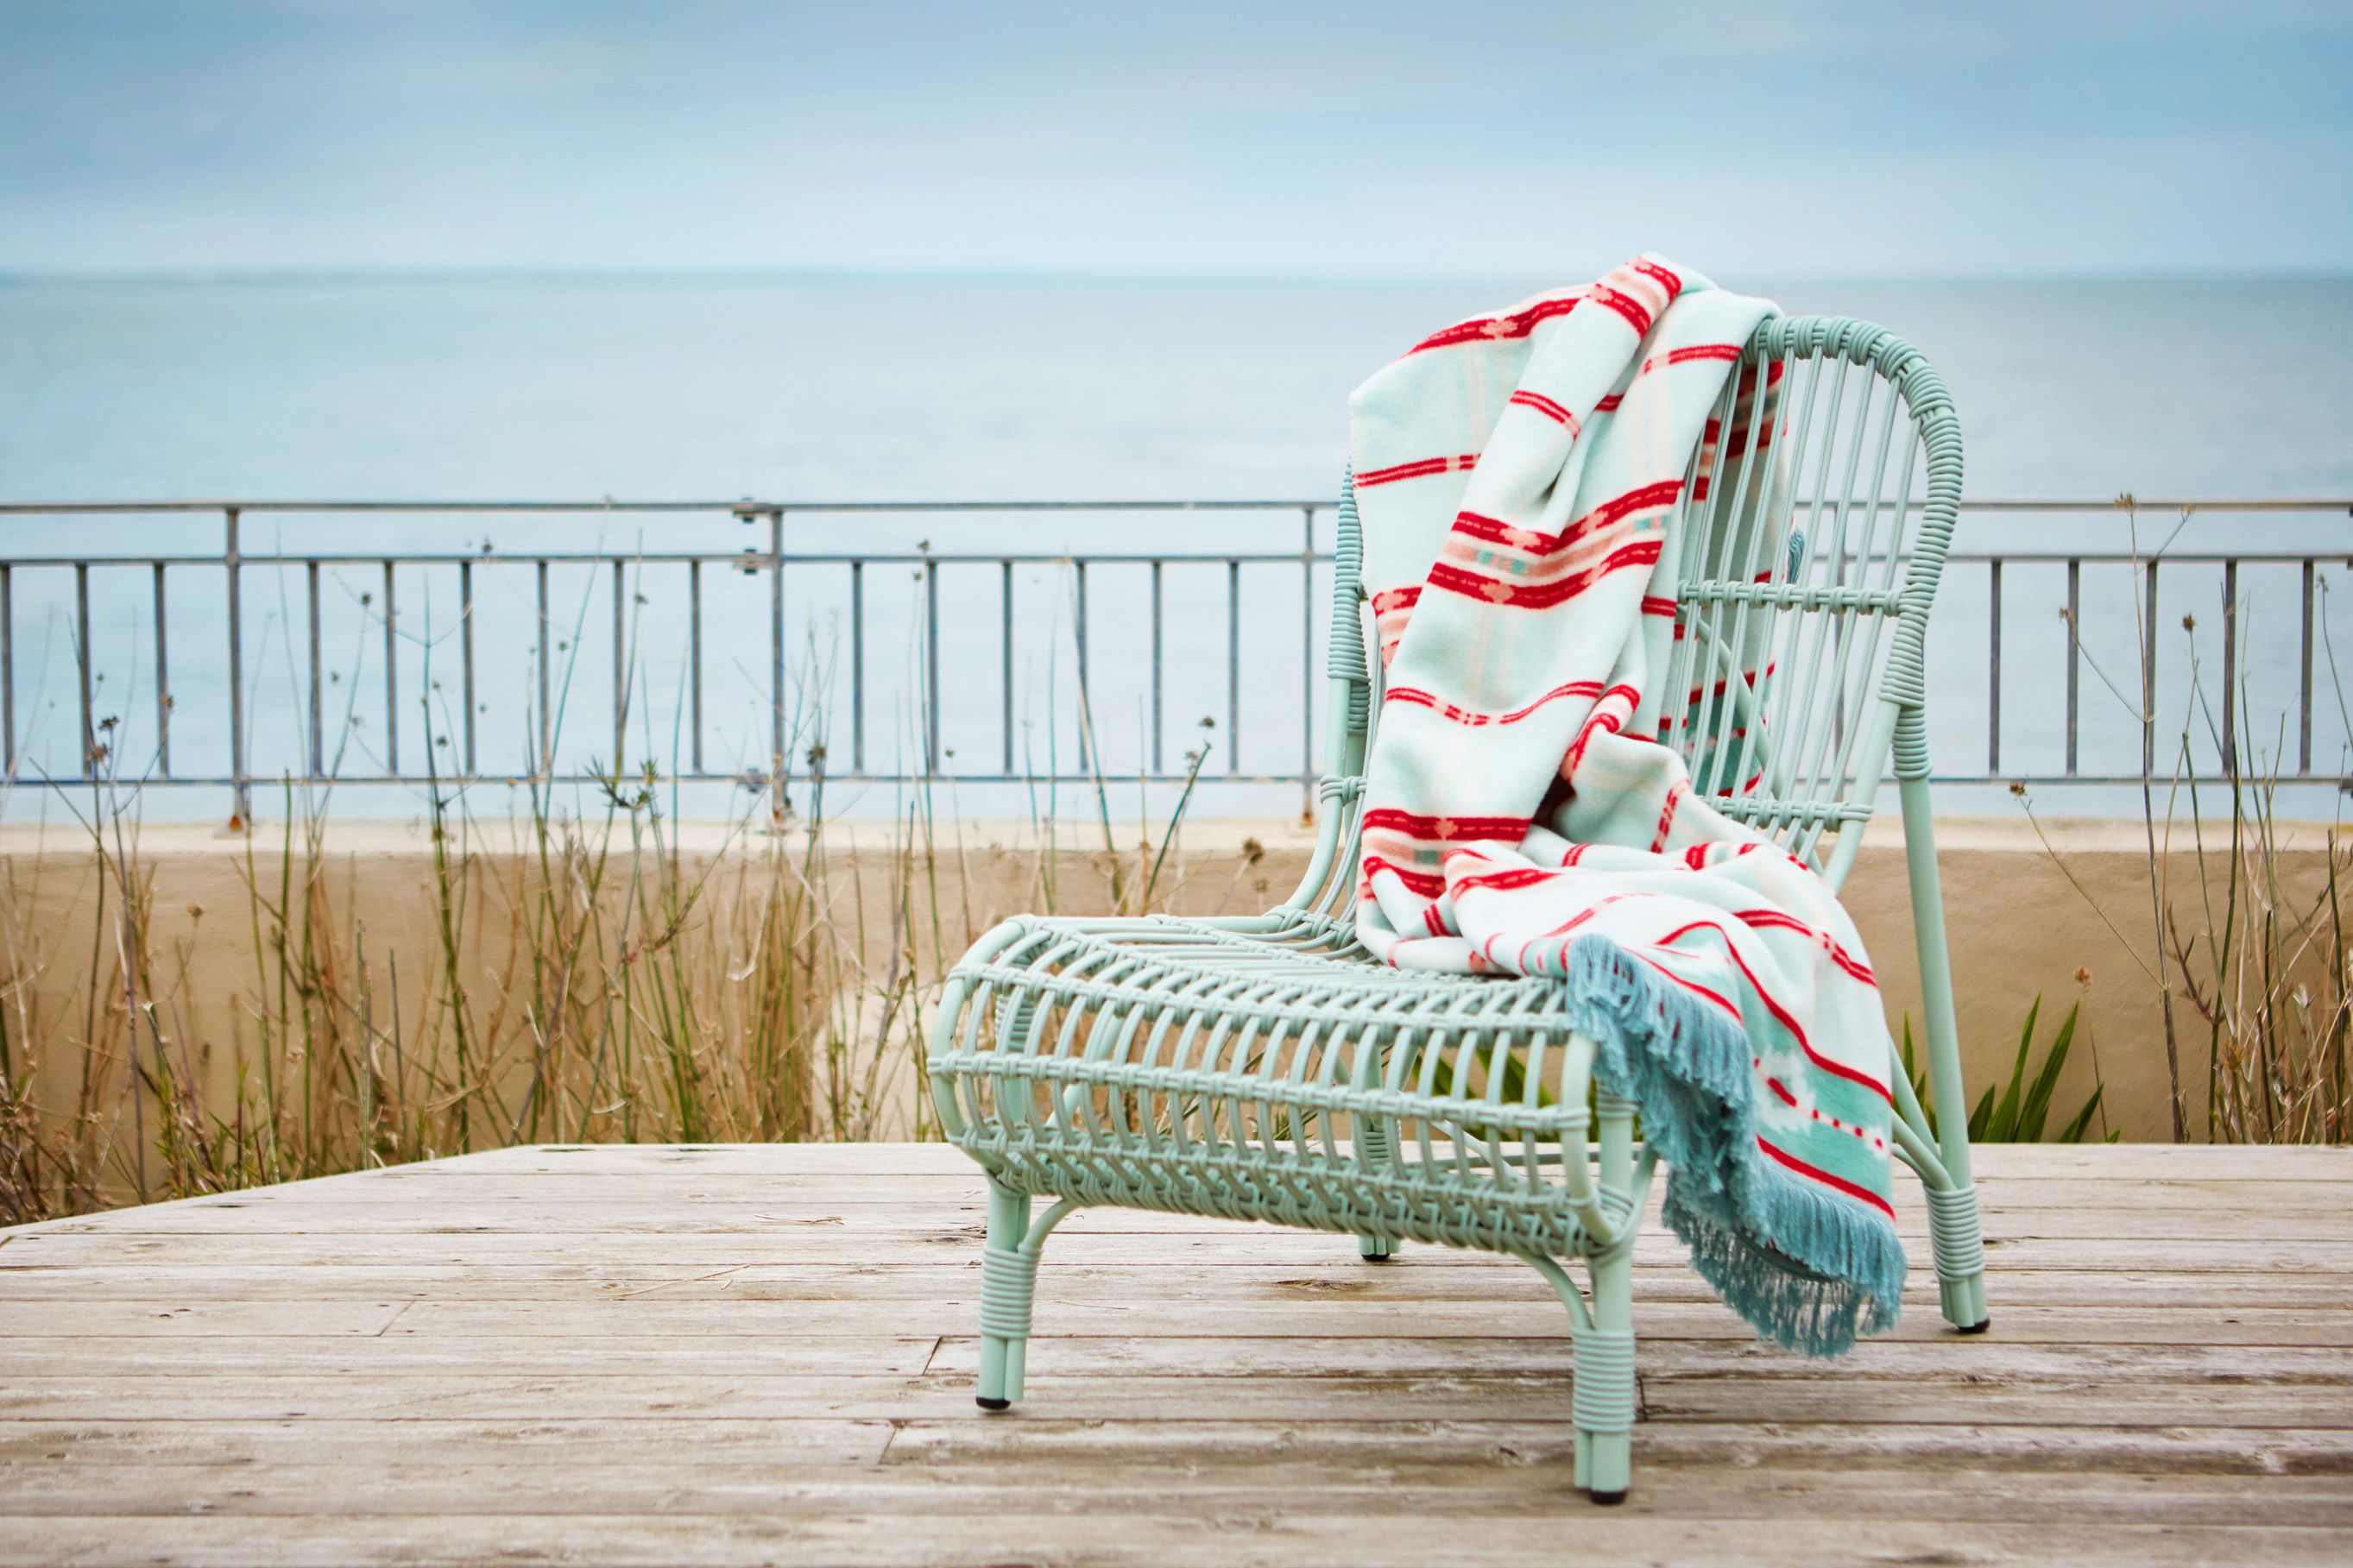 Woven chair and patterned blanket with fringe detail by